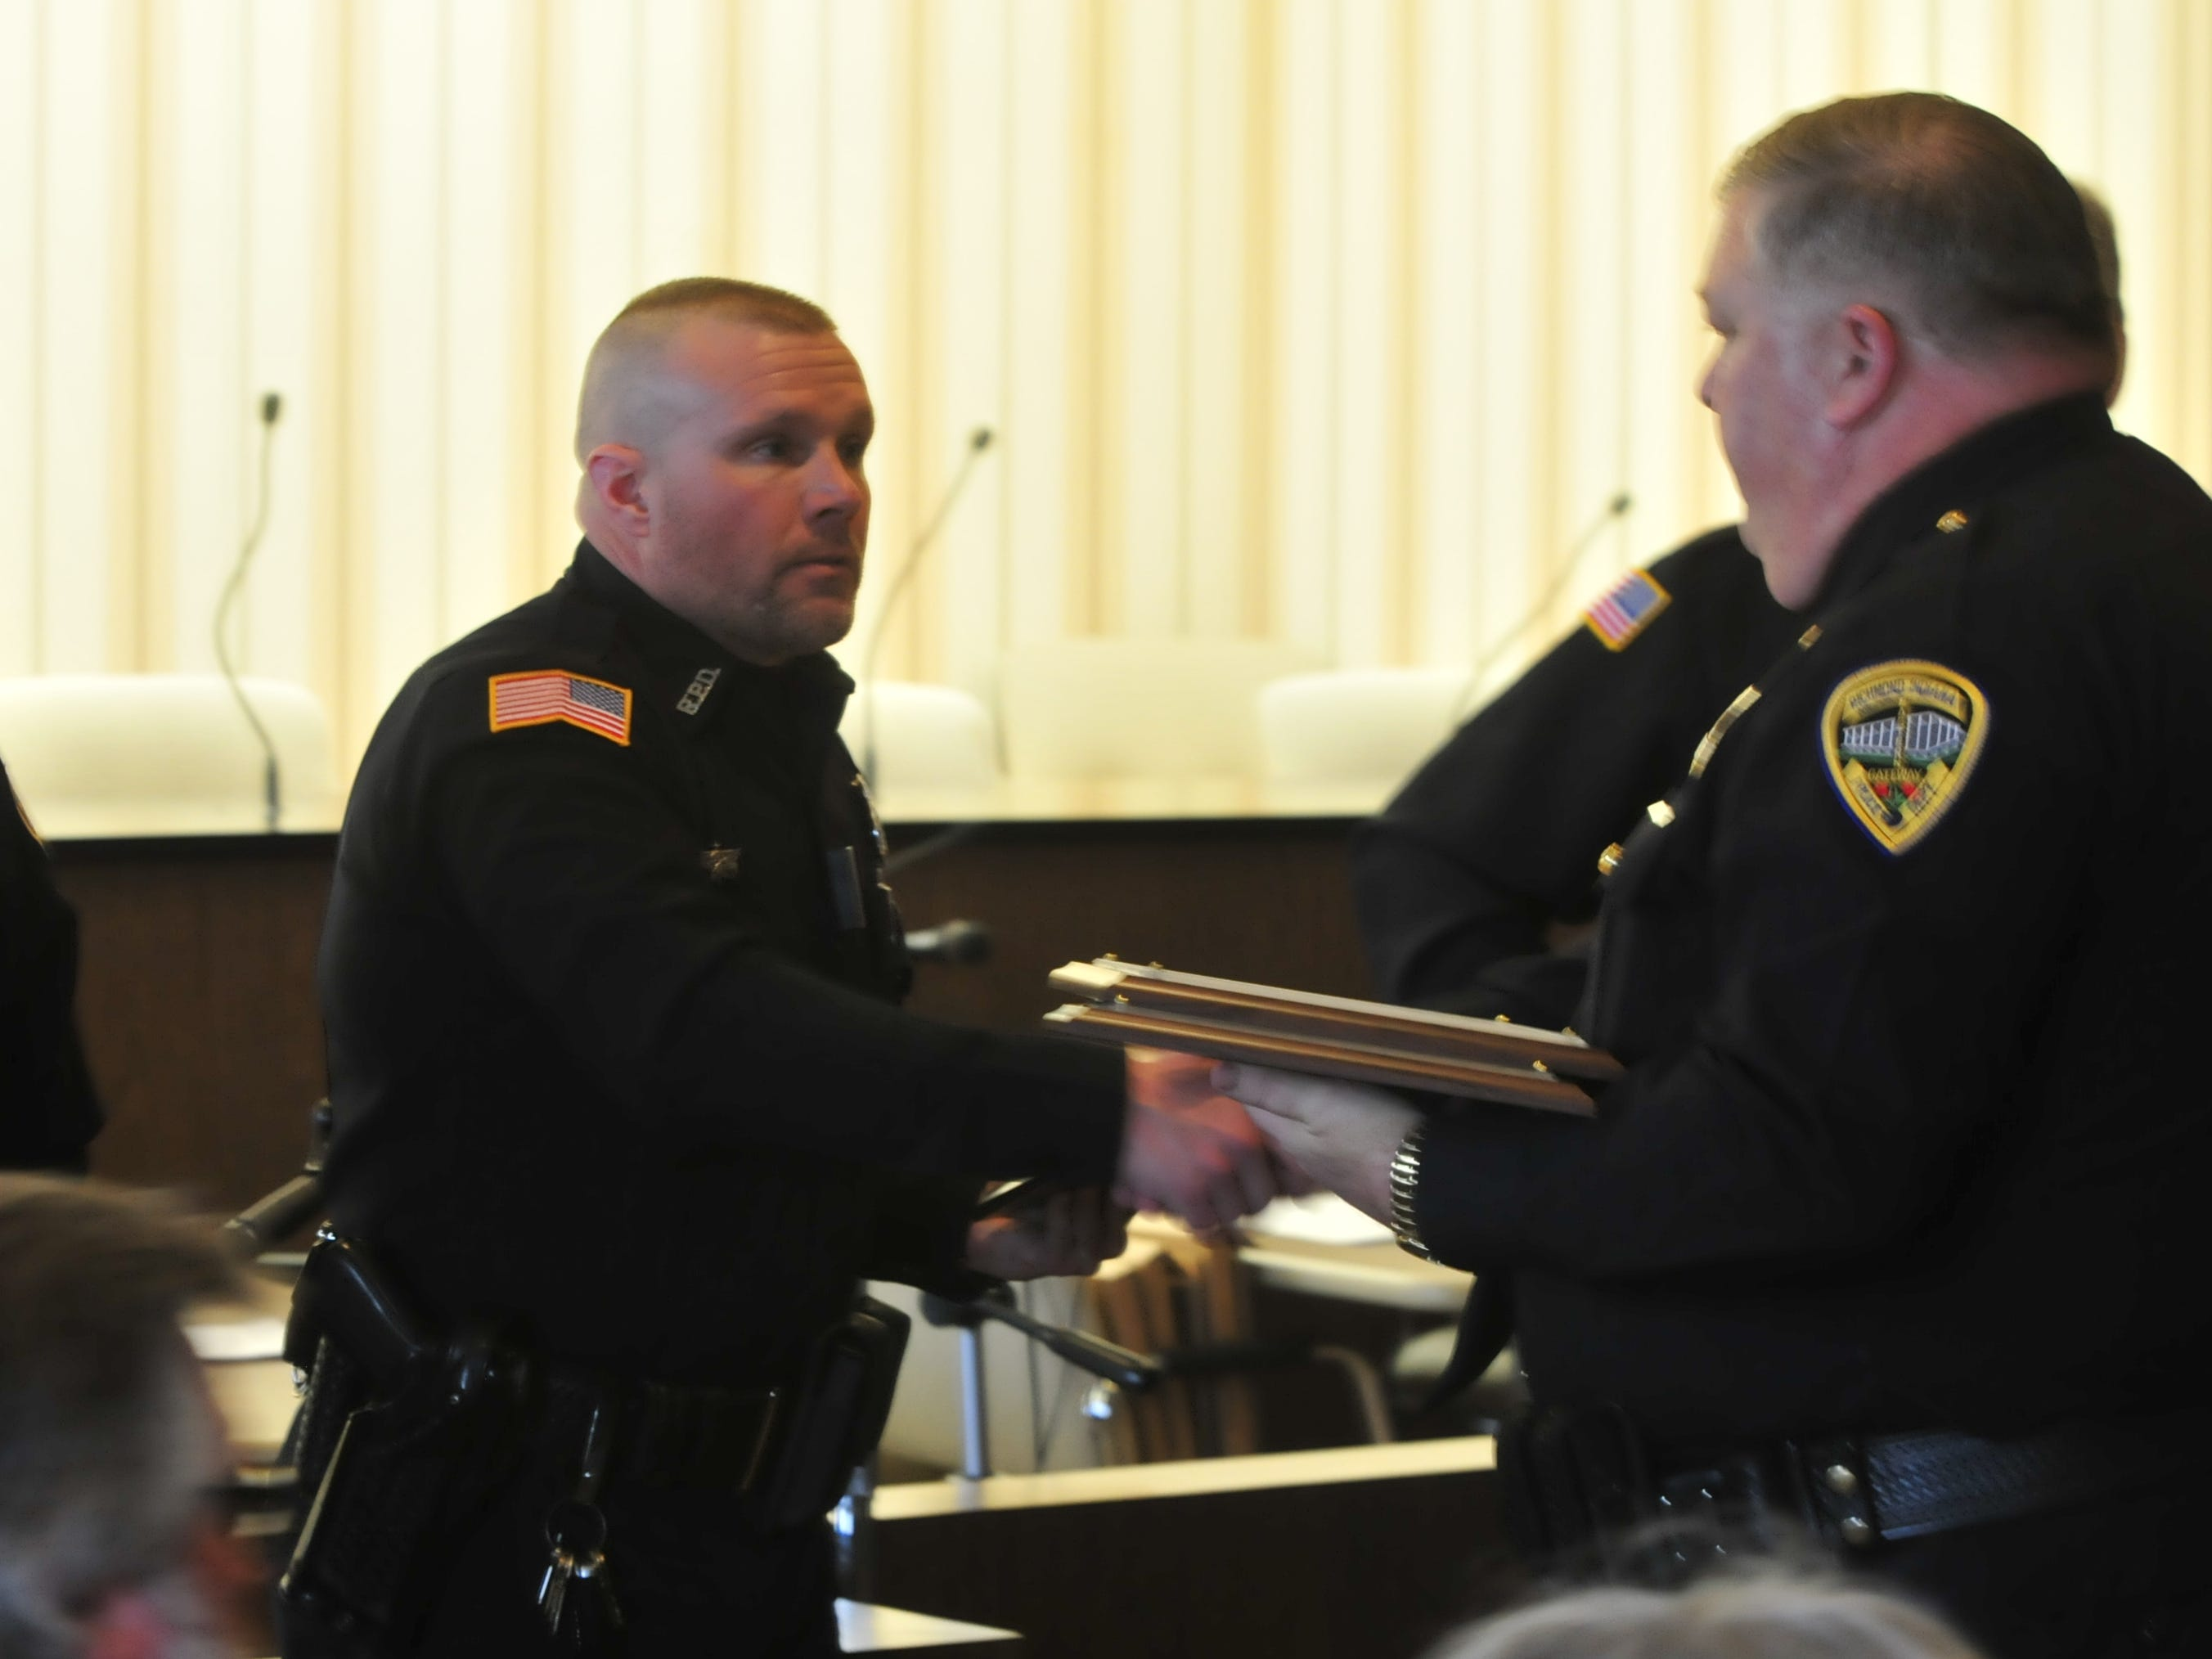 Officer Mike Black is presented a Police Star award by Major Mike Britt on Monday.